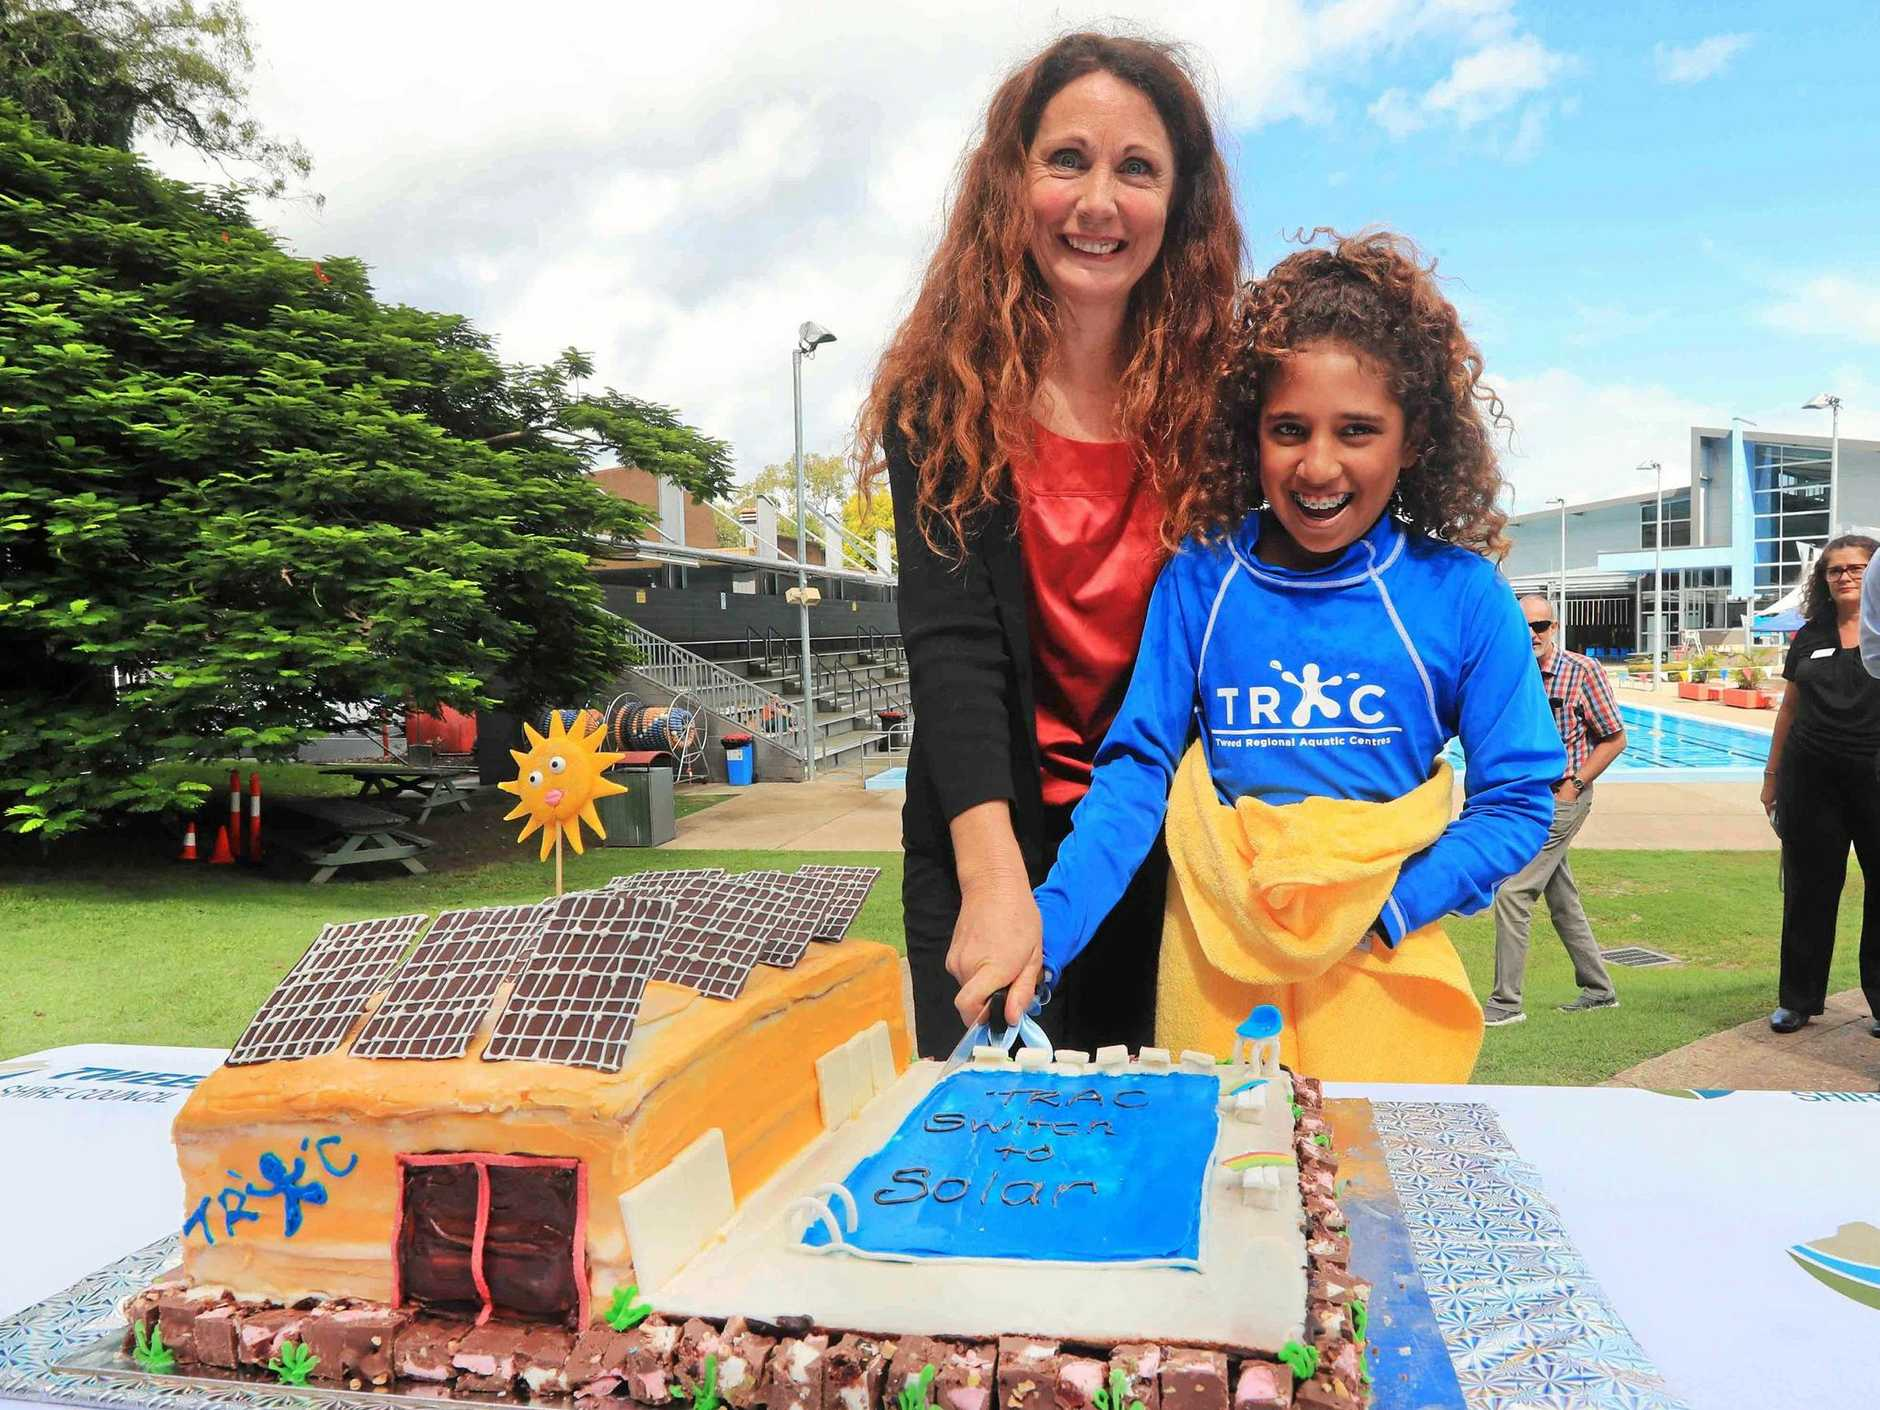 YUM FUN: Councillor Chris Cherry and local environmental champion, 11-year-old Alyce Togo cut a cake model of the Tweed Regional Aquatic Centre.